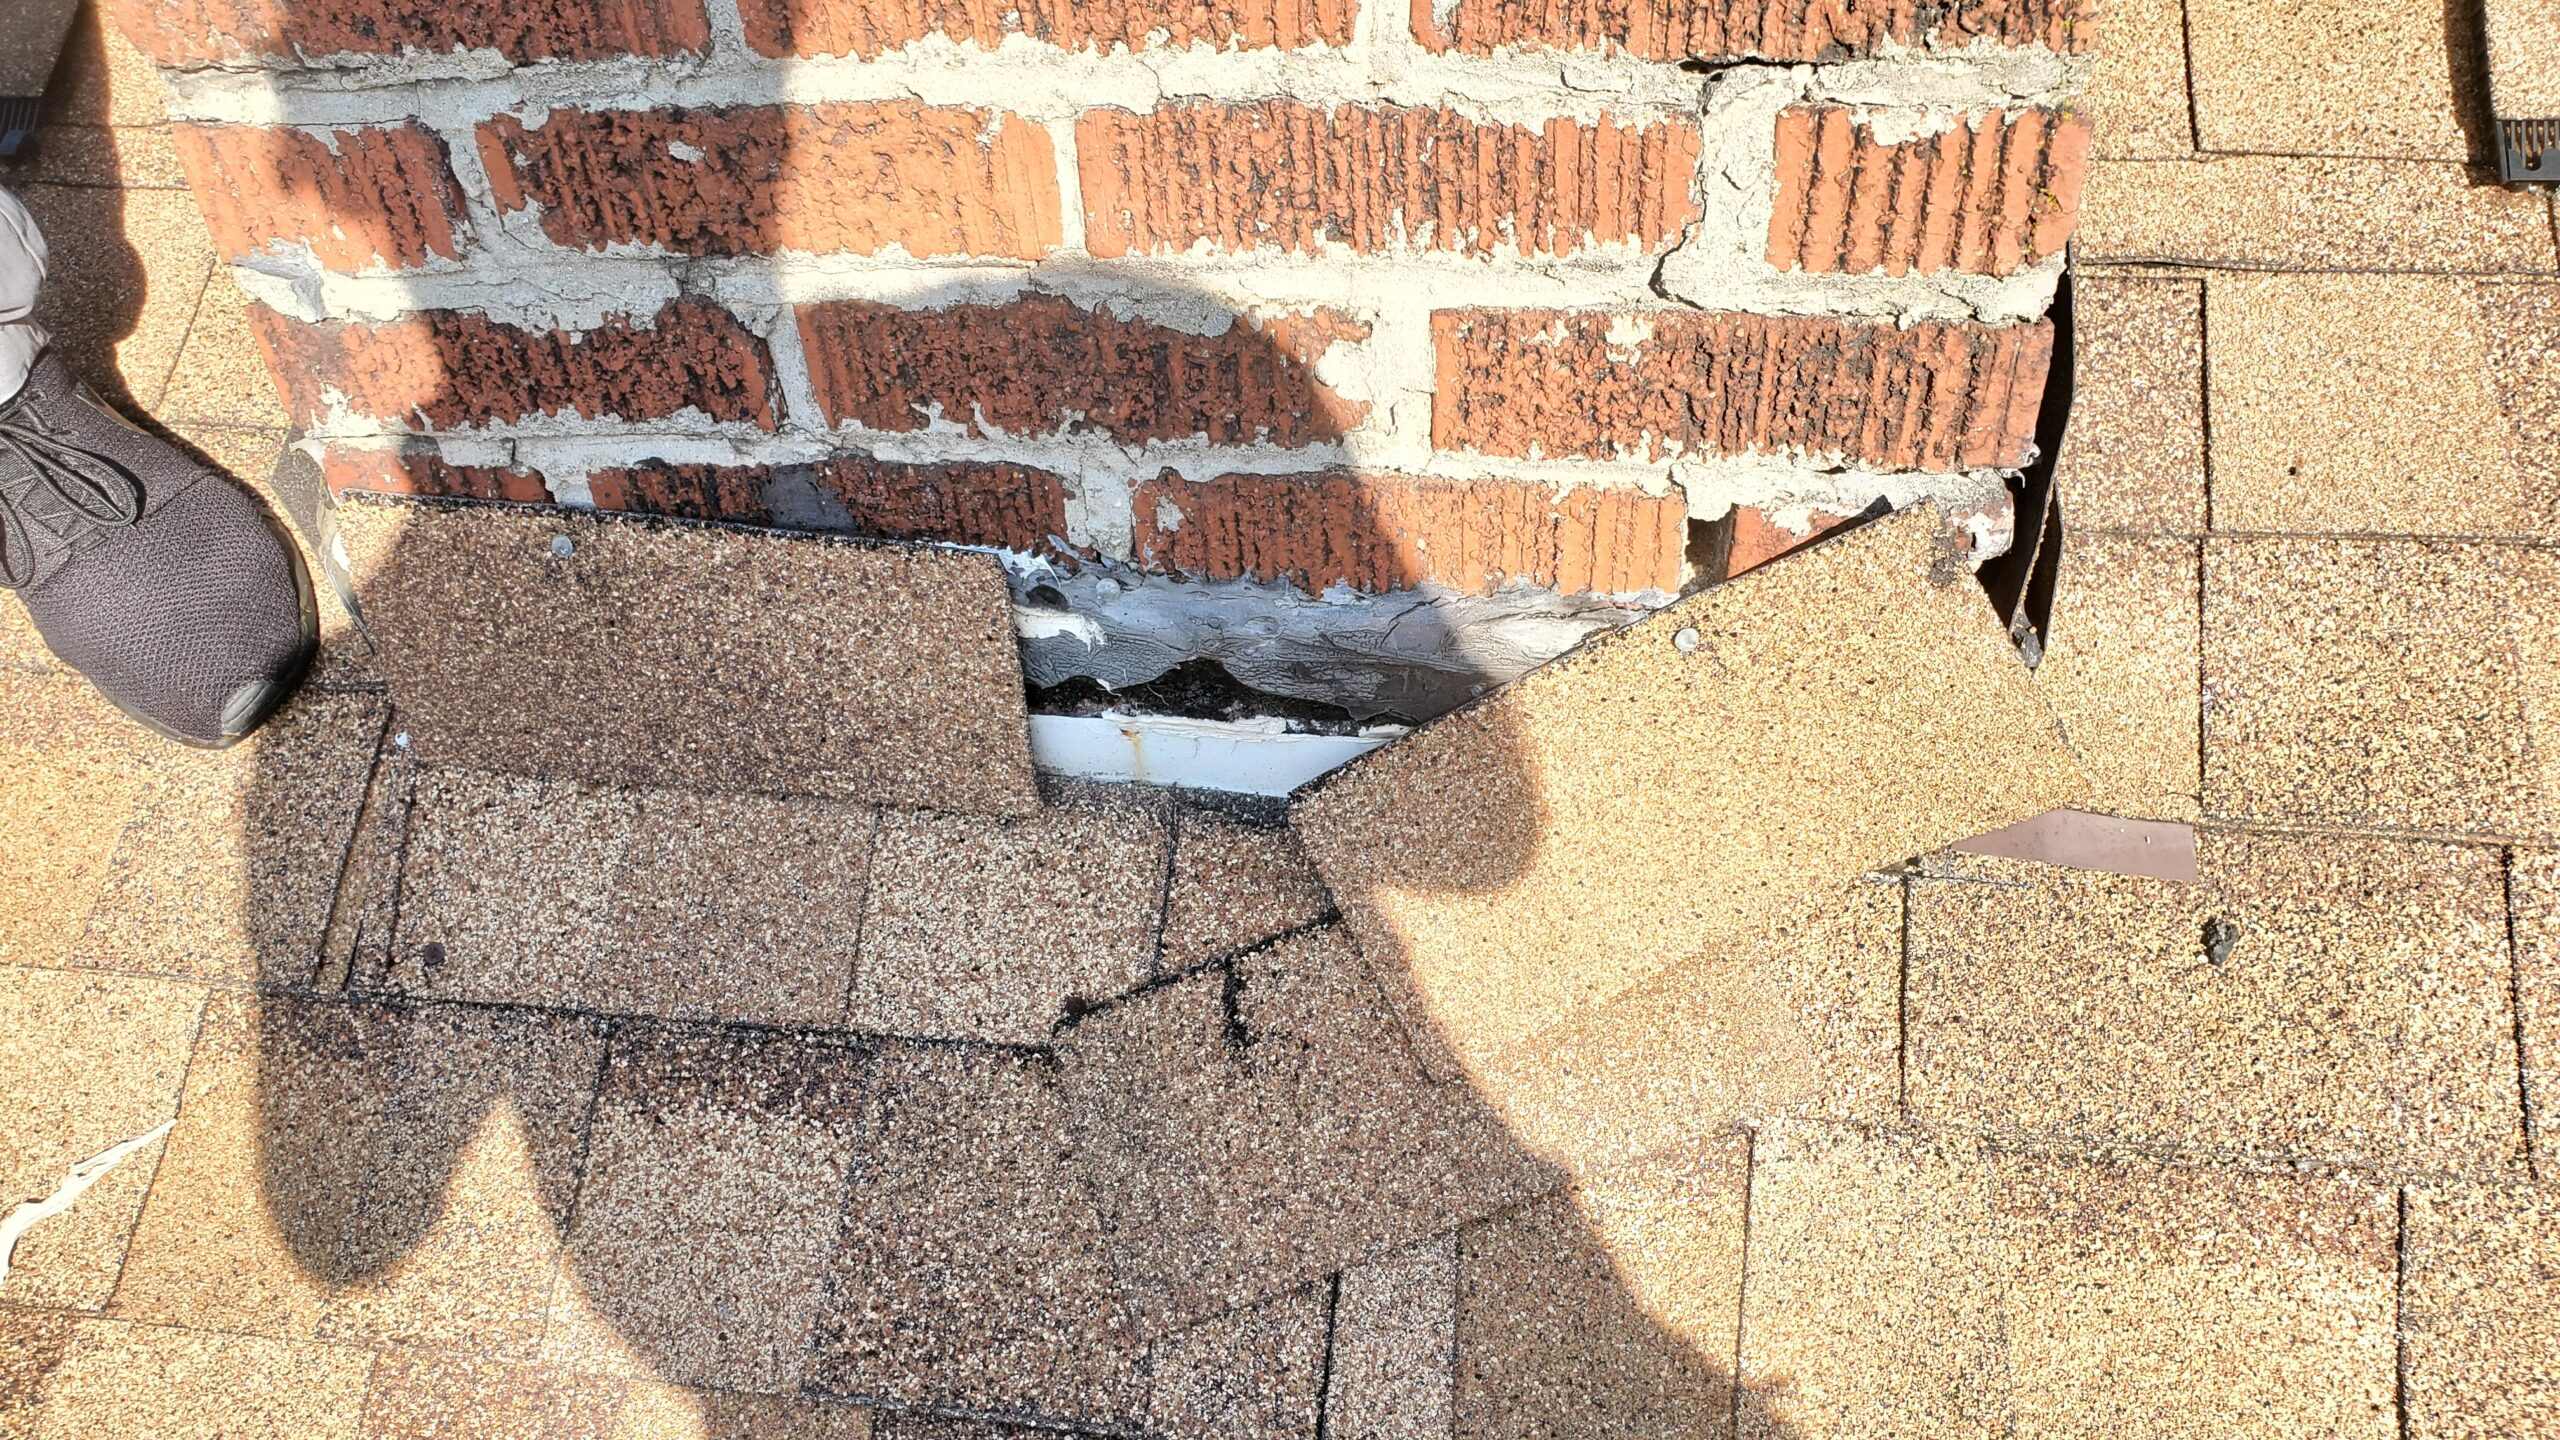 This is a picture of a smalle chimney that has shingles around the bottom of it in place of metal flashing